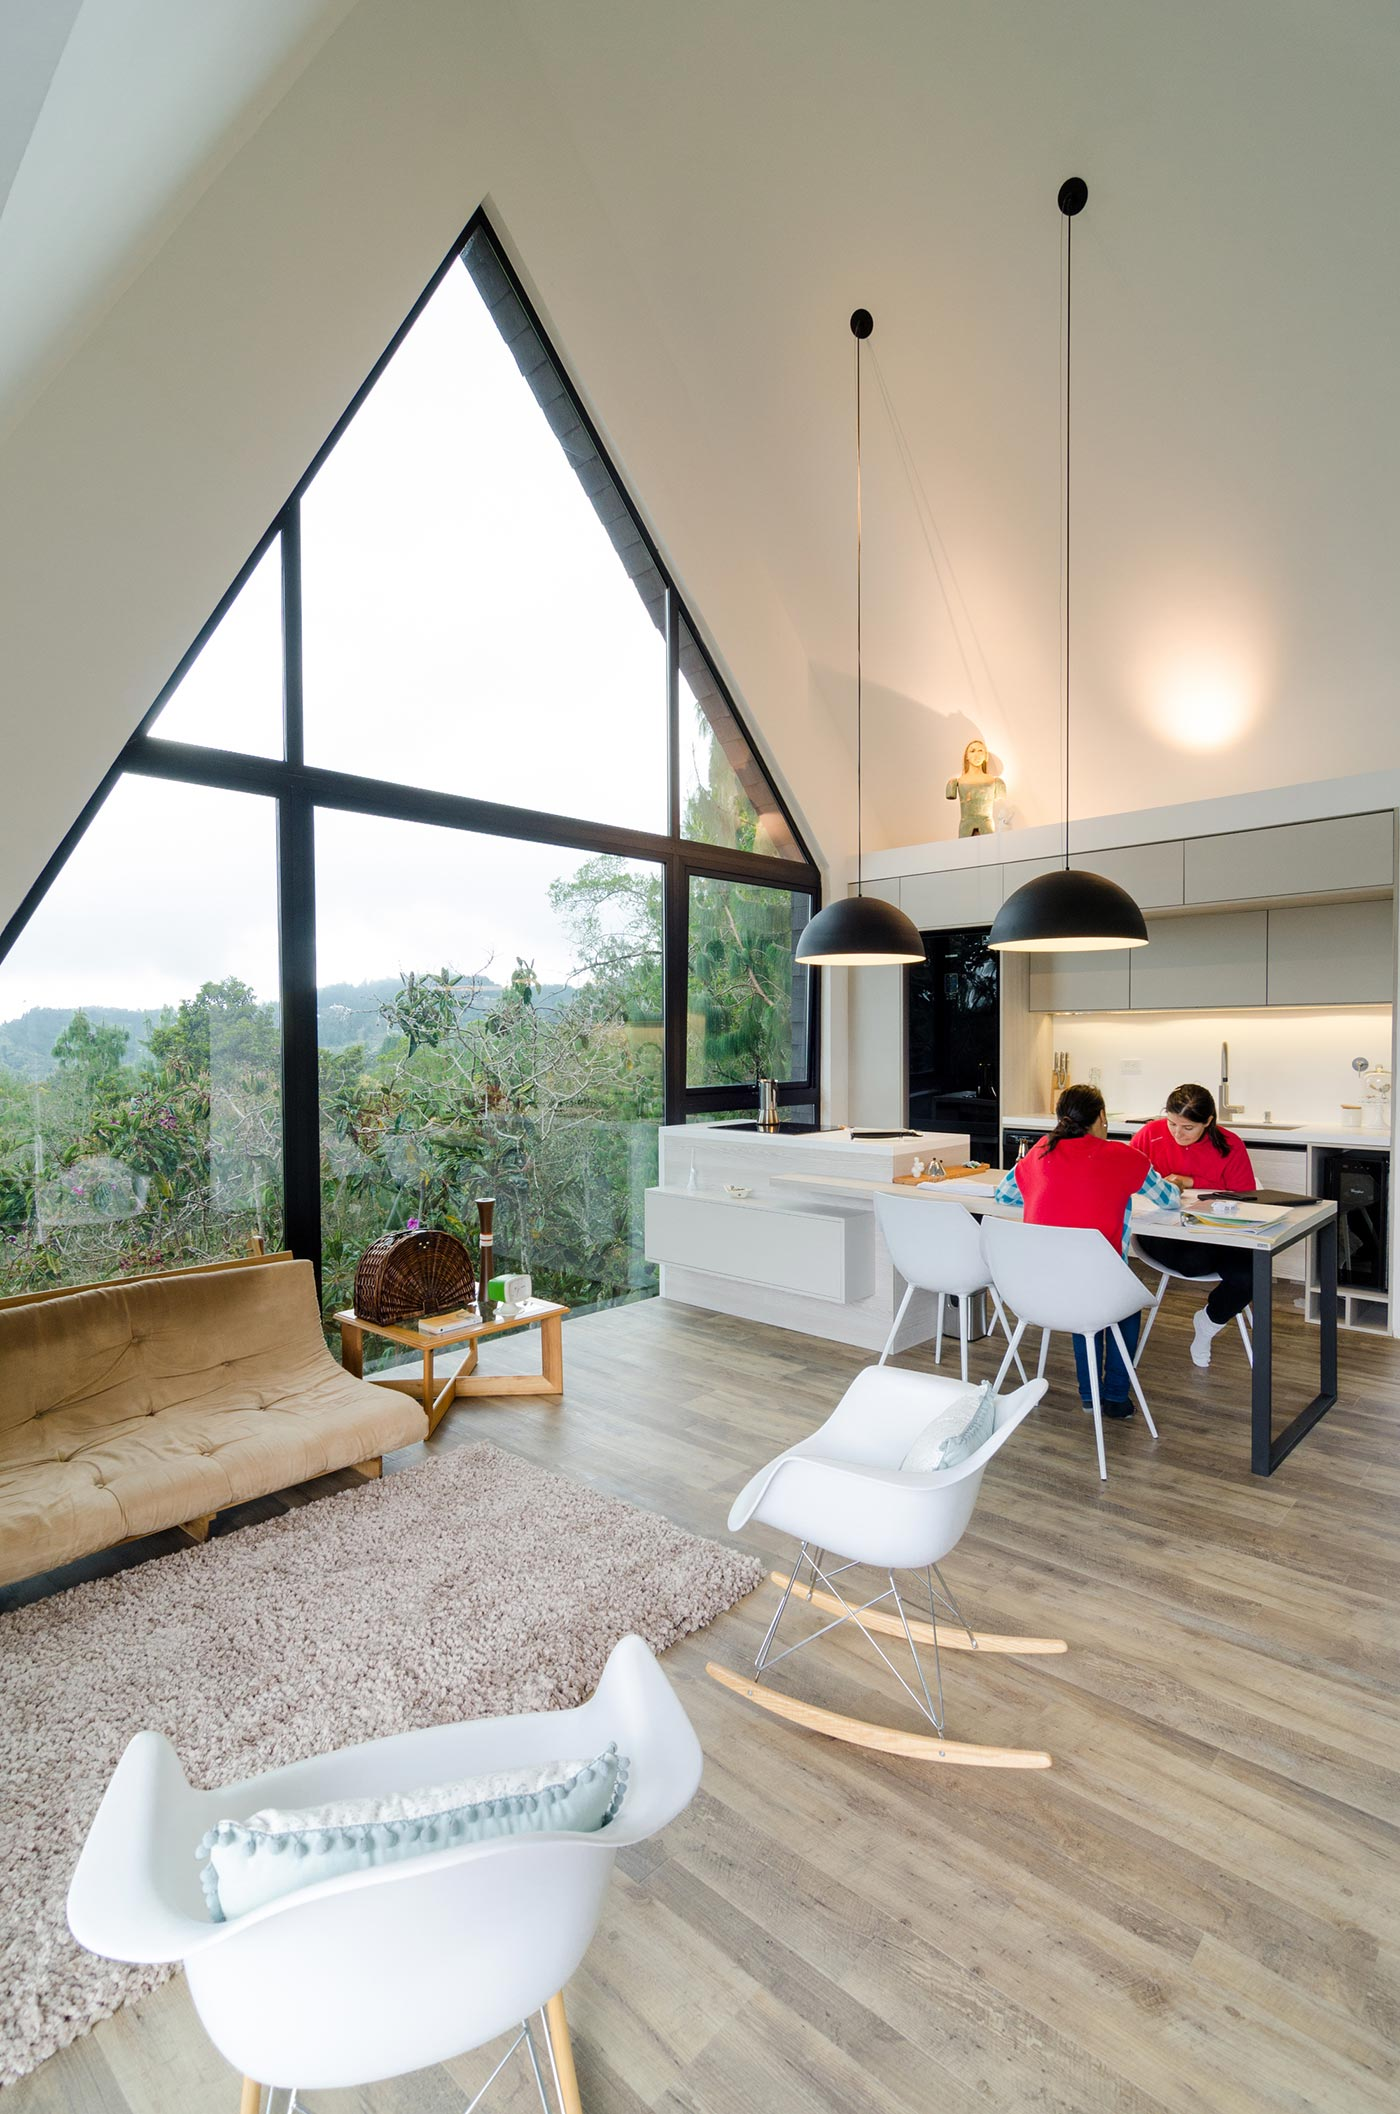 Living room and kitche in a modern open plan interior